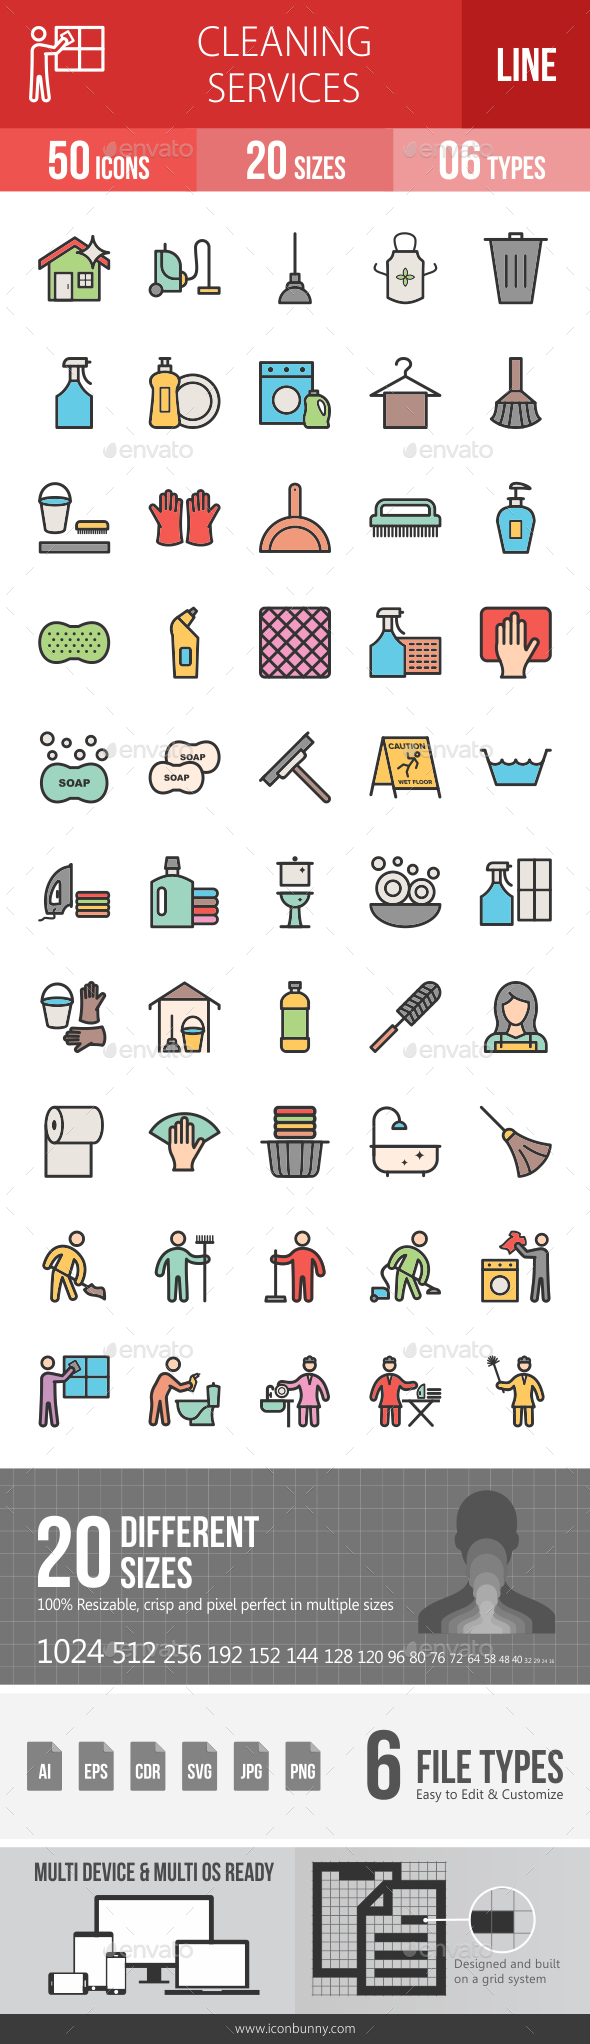 Cleaning Services Line Filled Icons